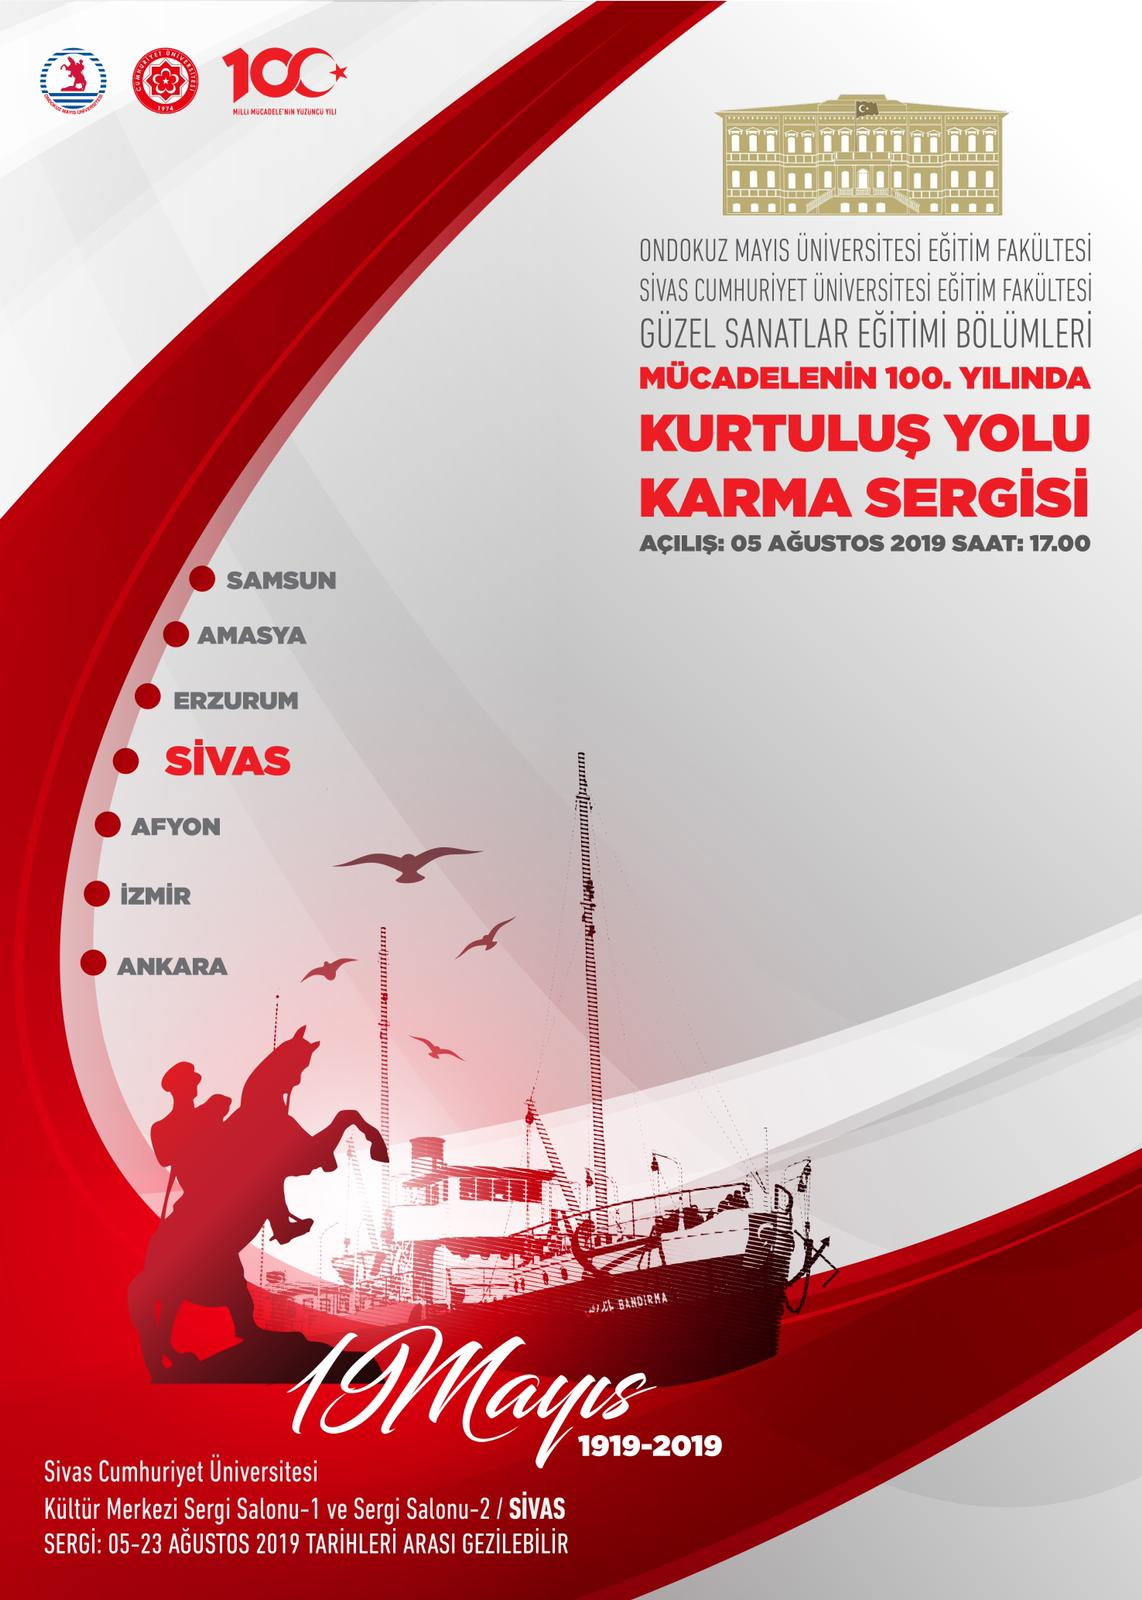 http://www.omu.edu.tr/sites/default/files/kurtulus_yolu_sergisi.jpeg